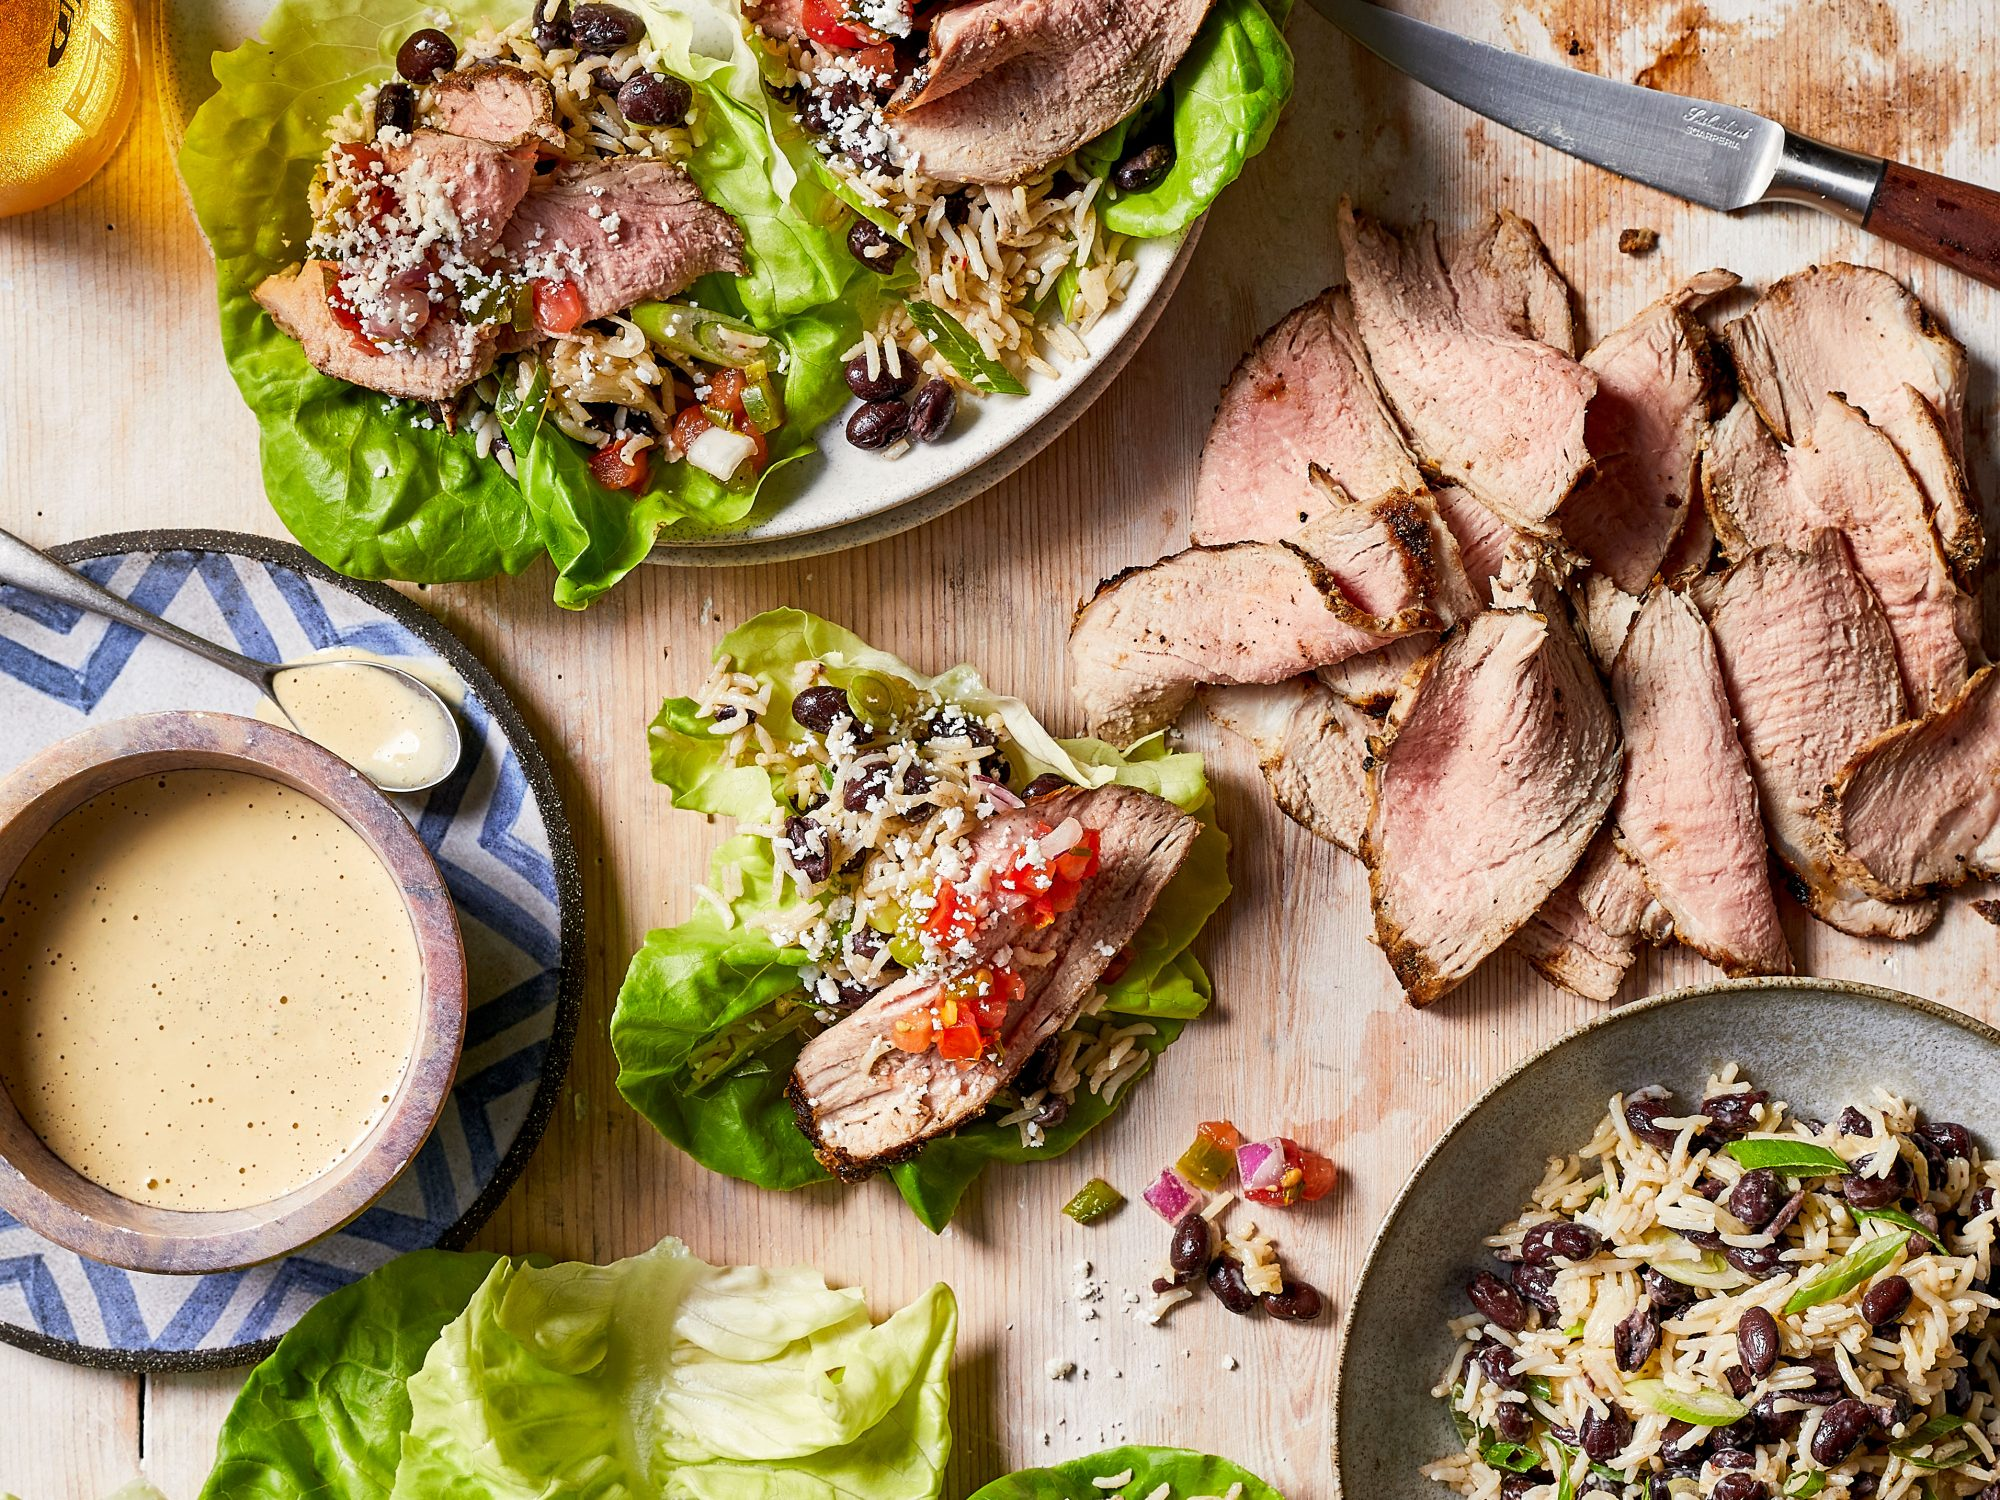 mr- Southwest Pork Lettuce Wraps